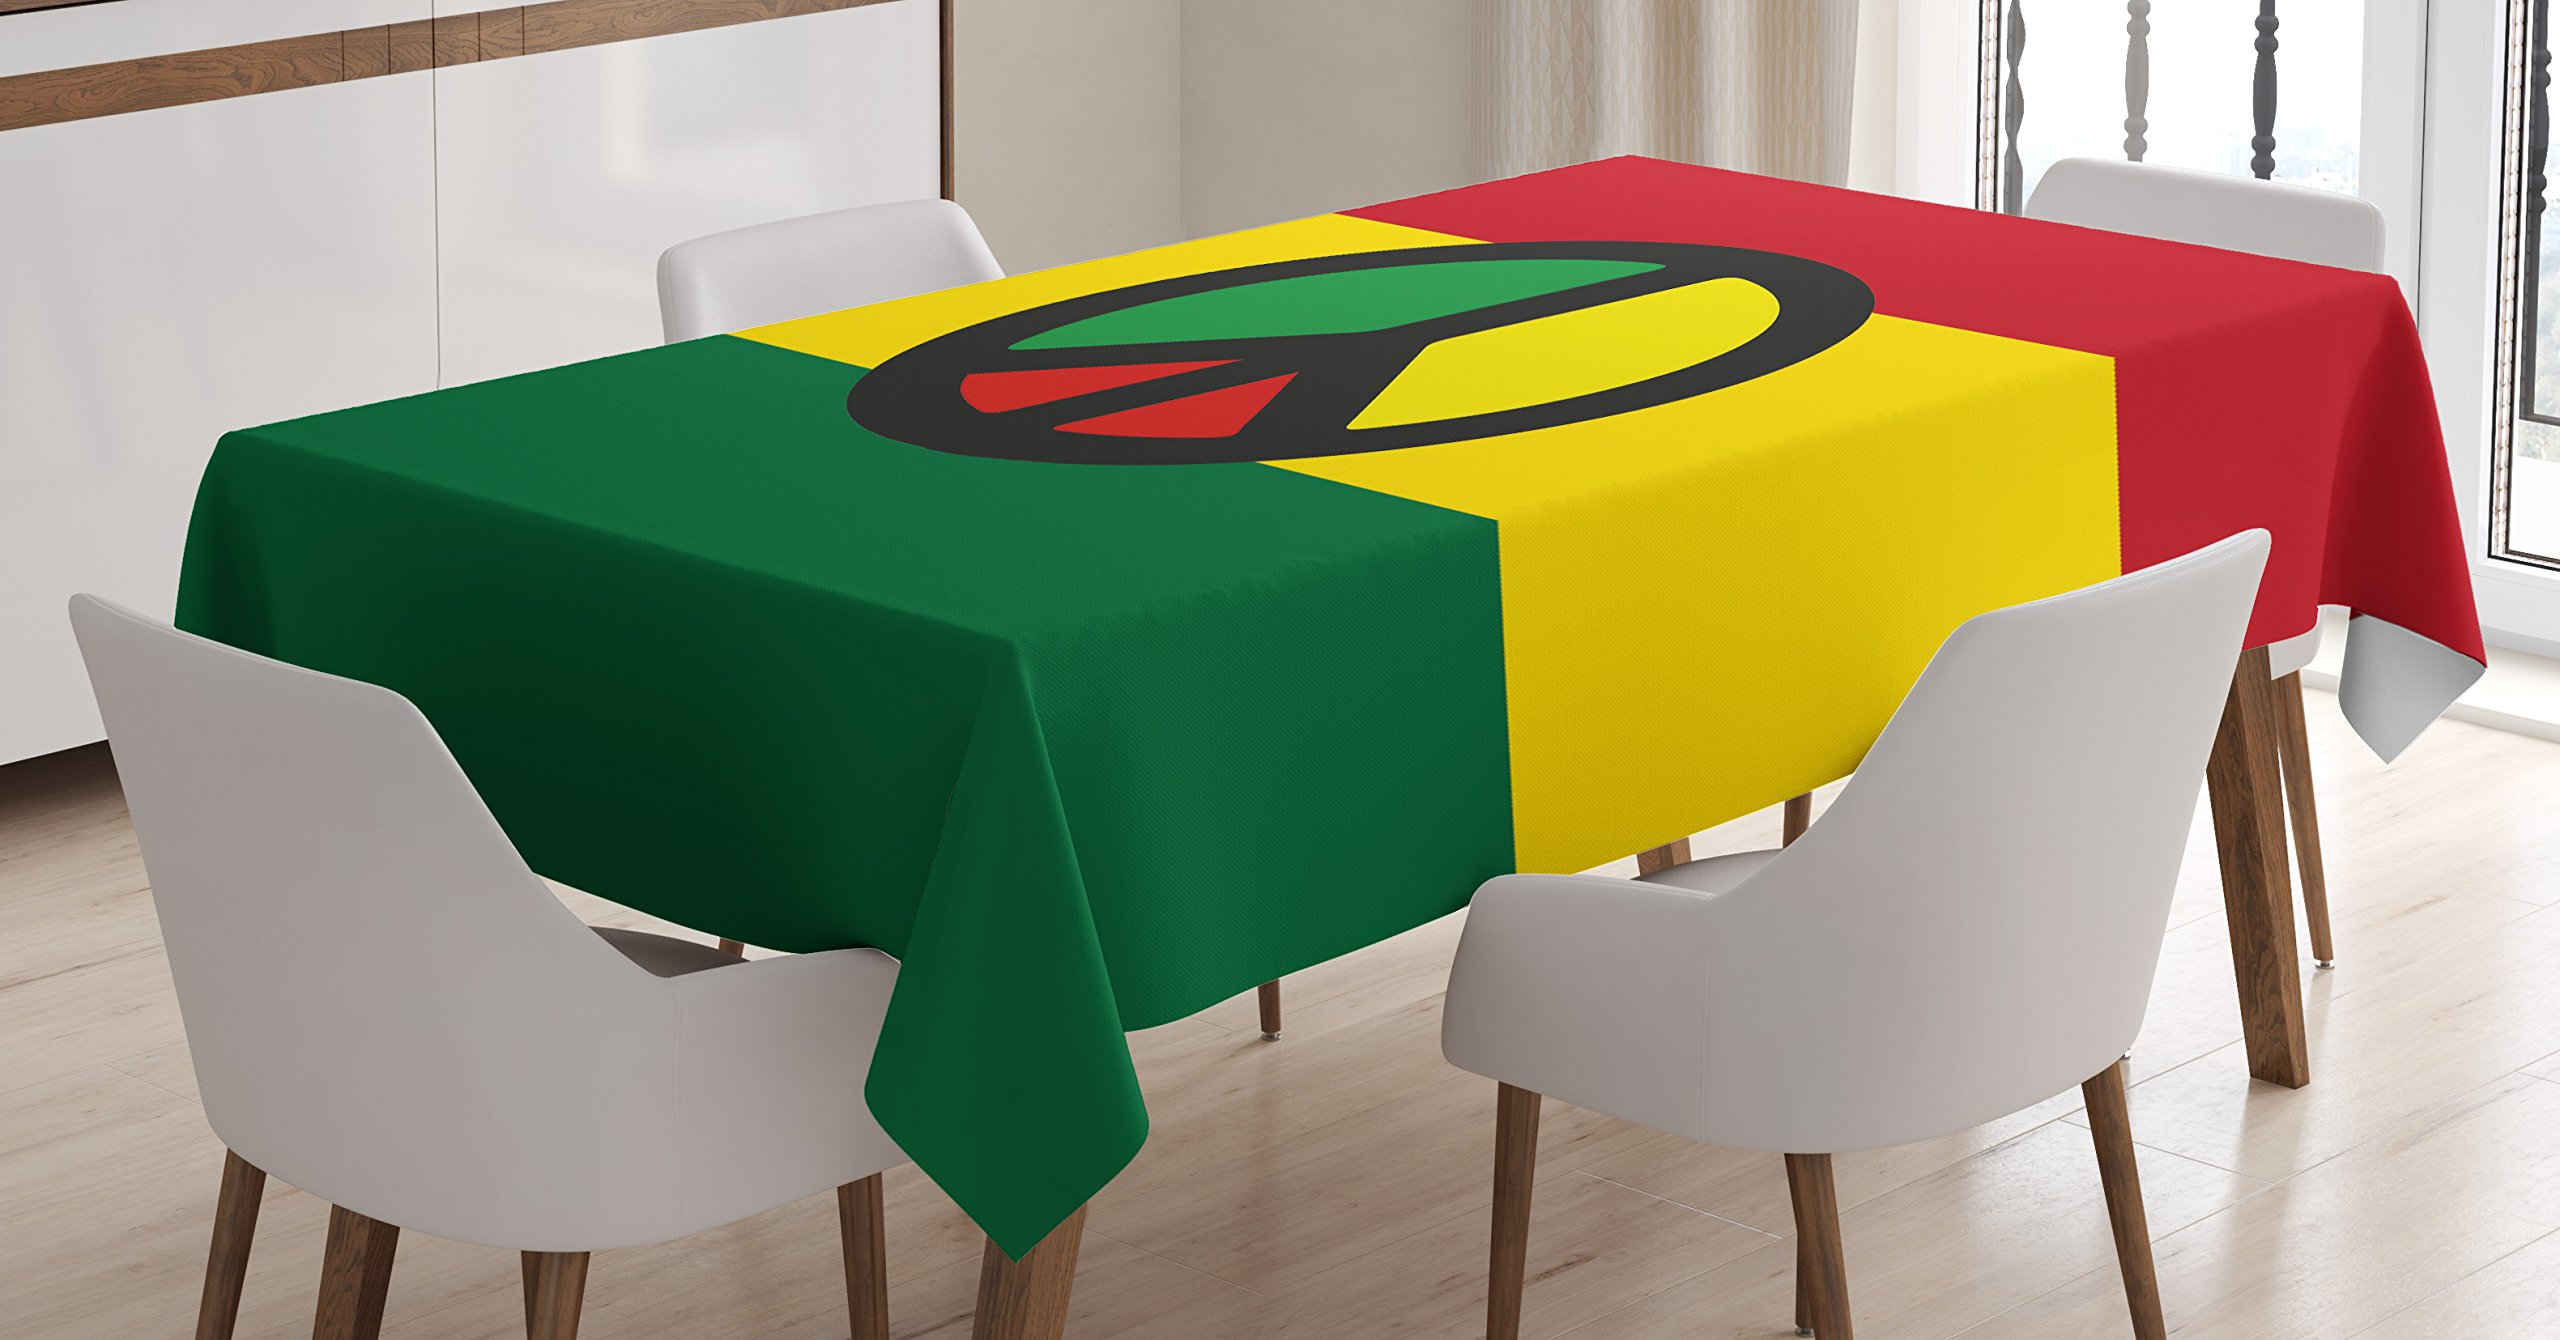 Ambesonne Jamaican Tablecloth, Reggae Culture Peace Symbol Caribbean Country Flag Design Americas Rasta Culture, Dining Room Kitchen Rectangular Table Cover, 60 W X 84 L inches, Multicolor